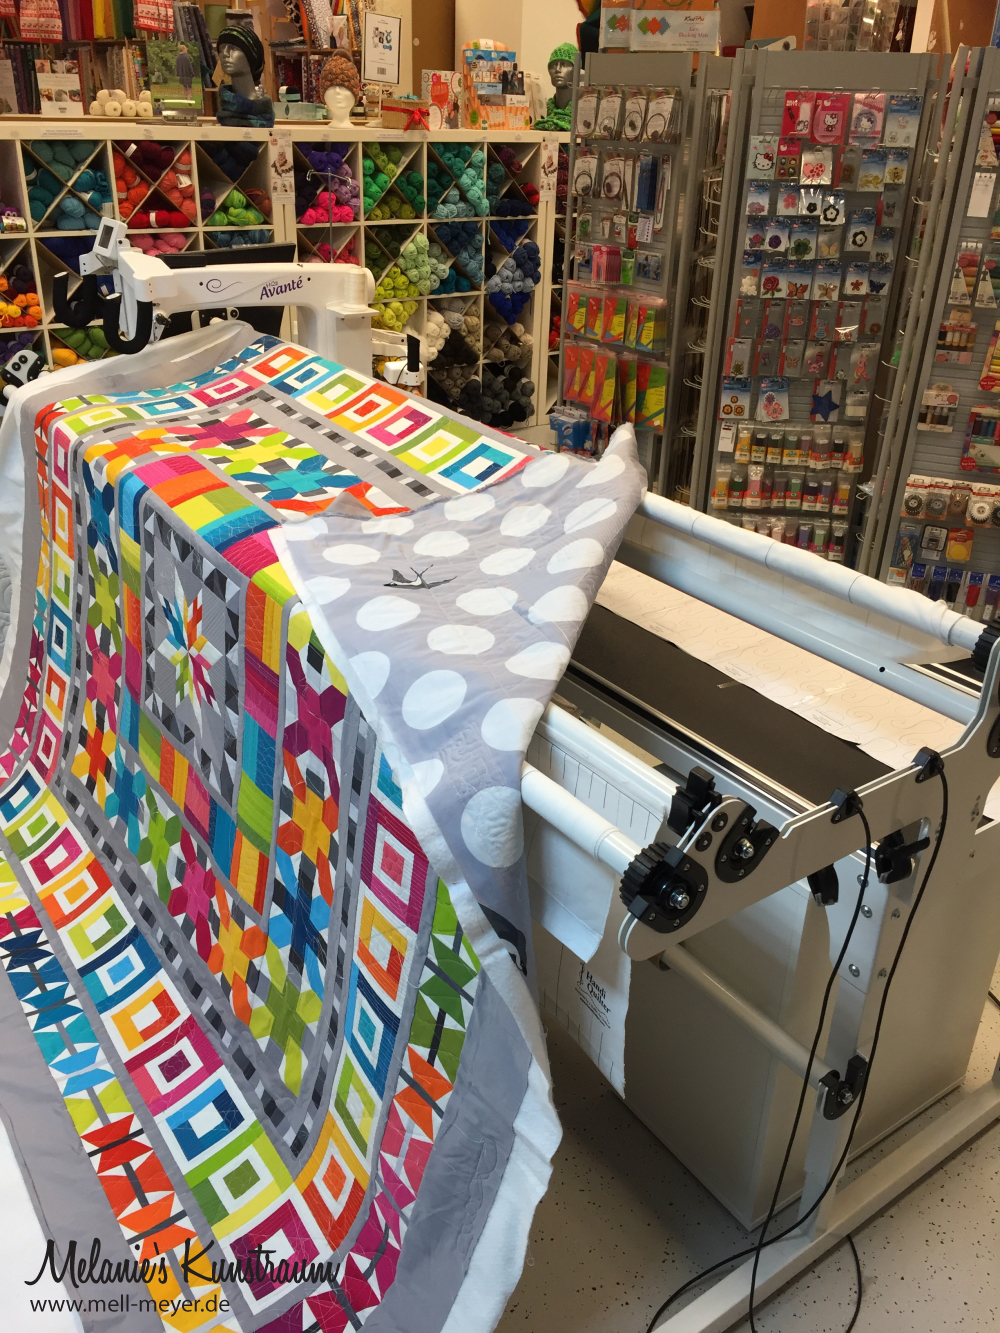 How to forget the two most important things for the road trip to the longarm machine | mell-meyer.de